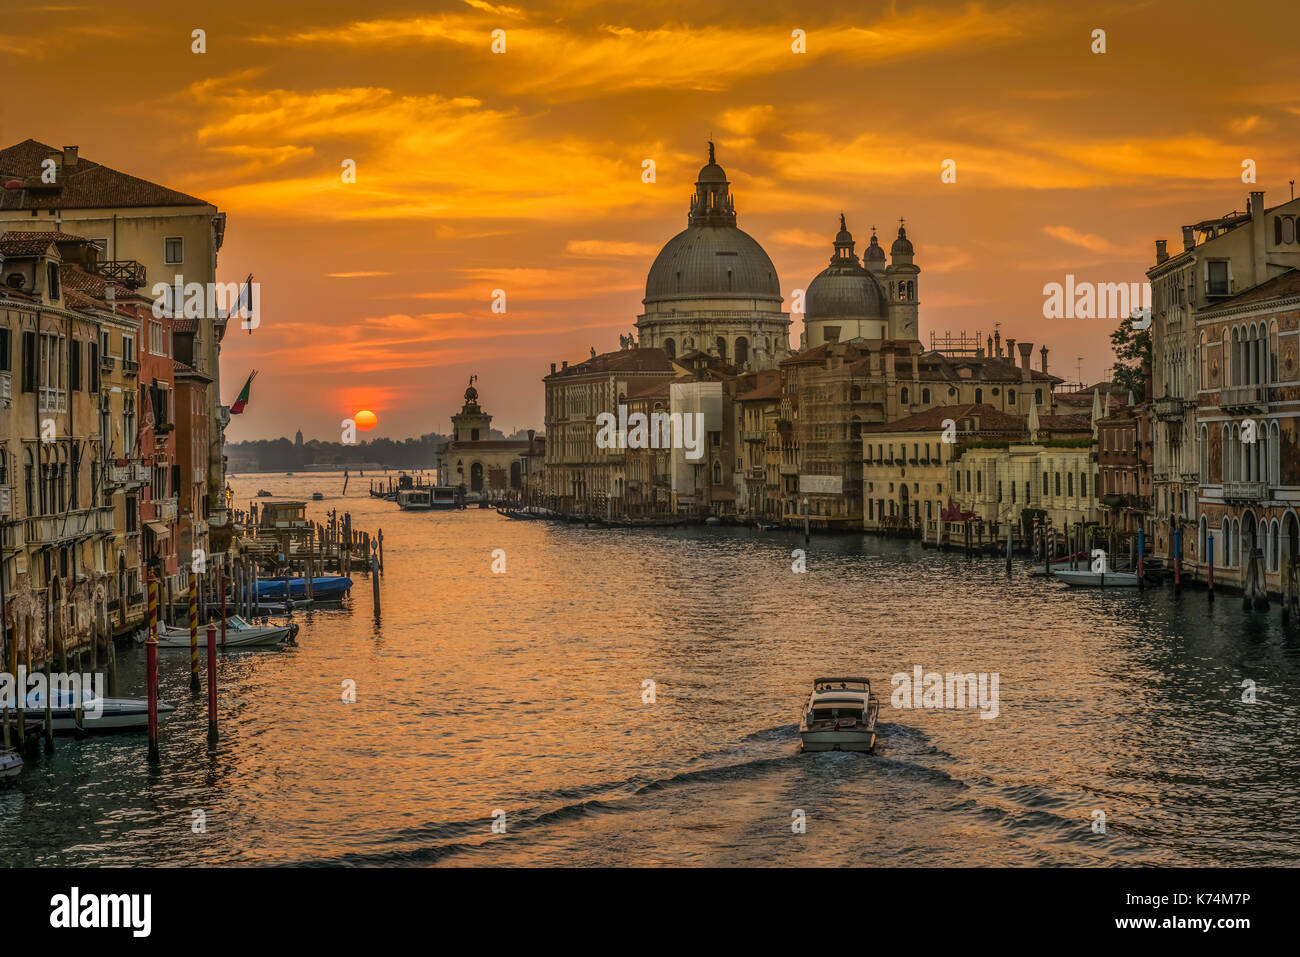 Sunrise photo from Academia bridge over Grand Canal in Venice. - Stock Image